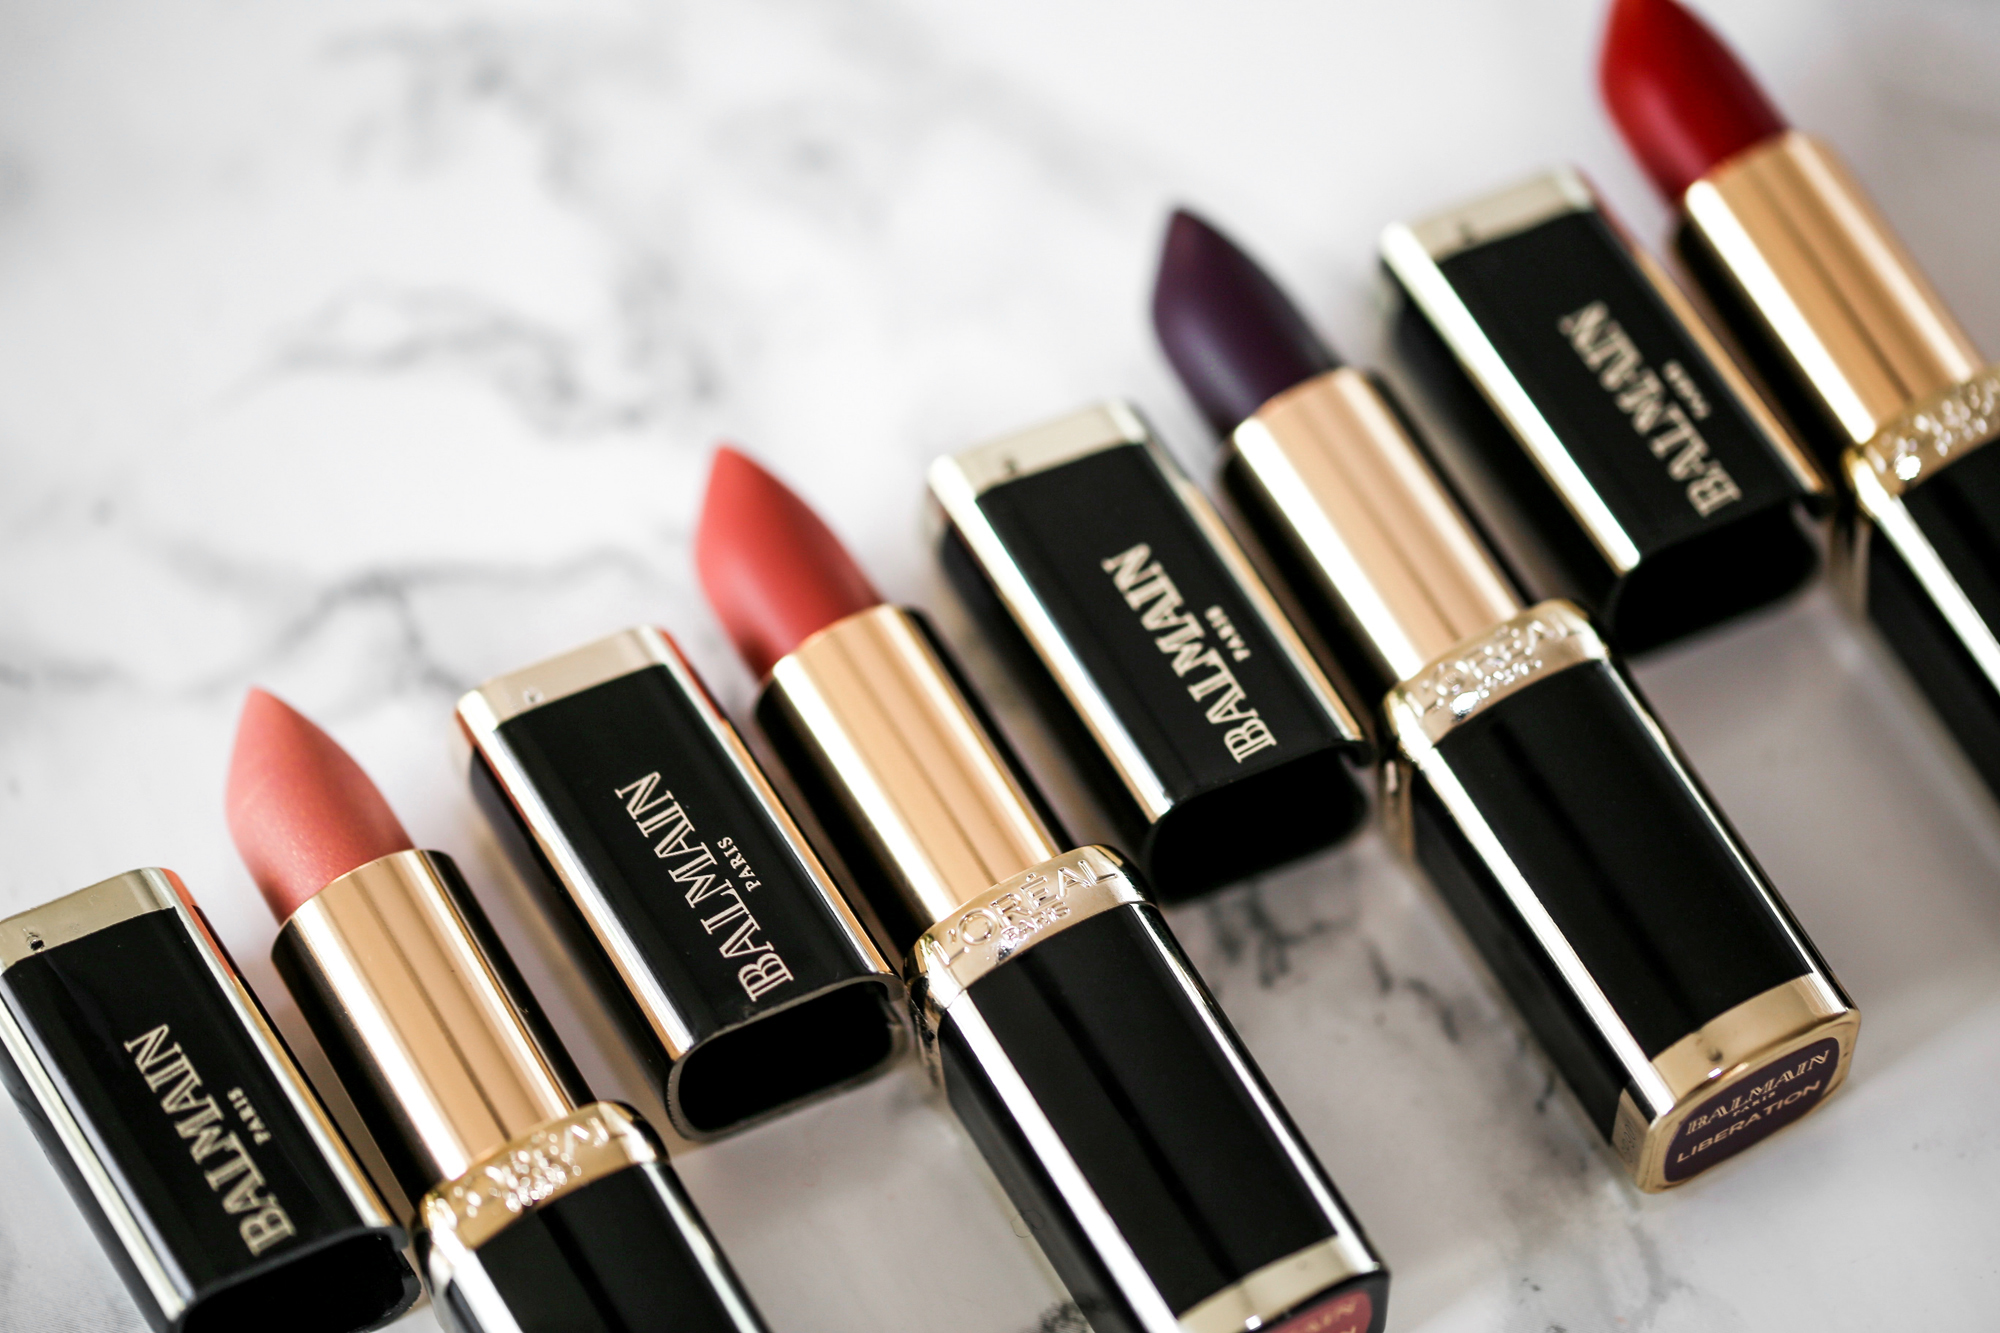 L'Oreal X Balmain Couture LIPSTICK collection - Confidence, Liberation, Domination, Confession Swatches-2075.JPG